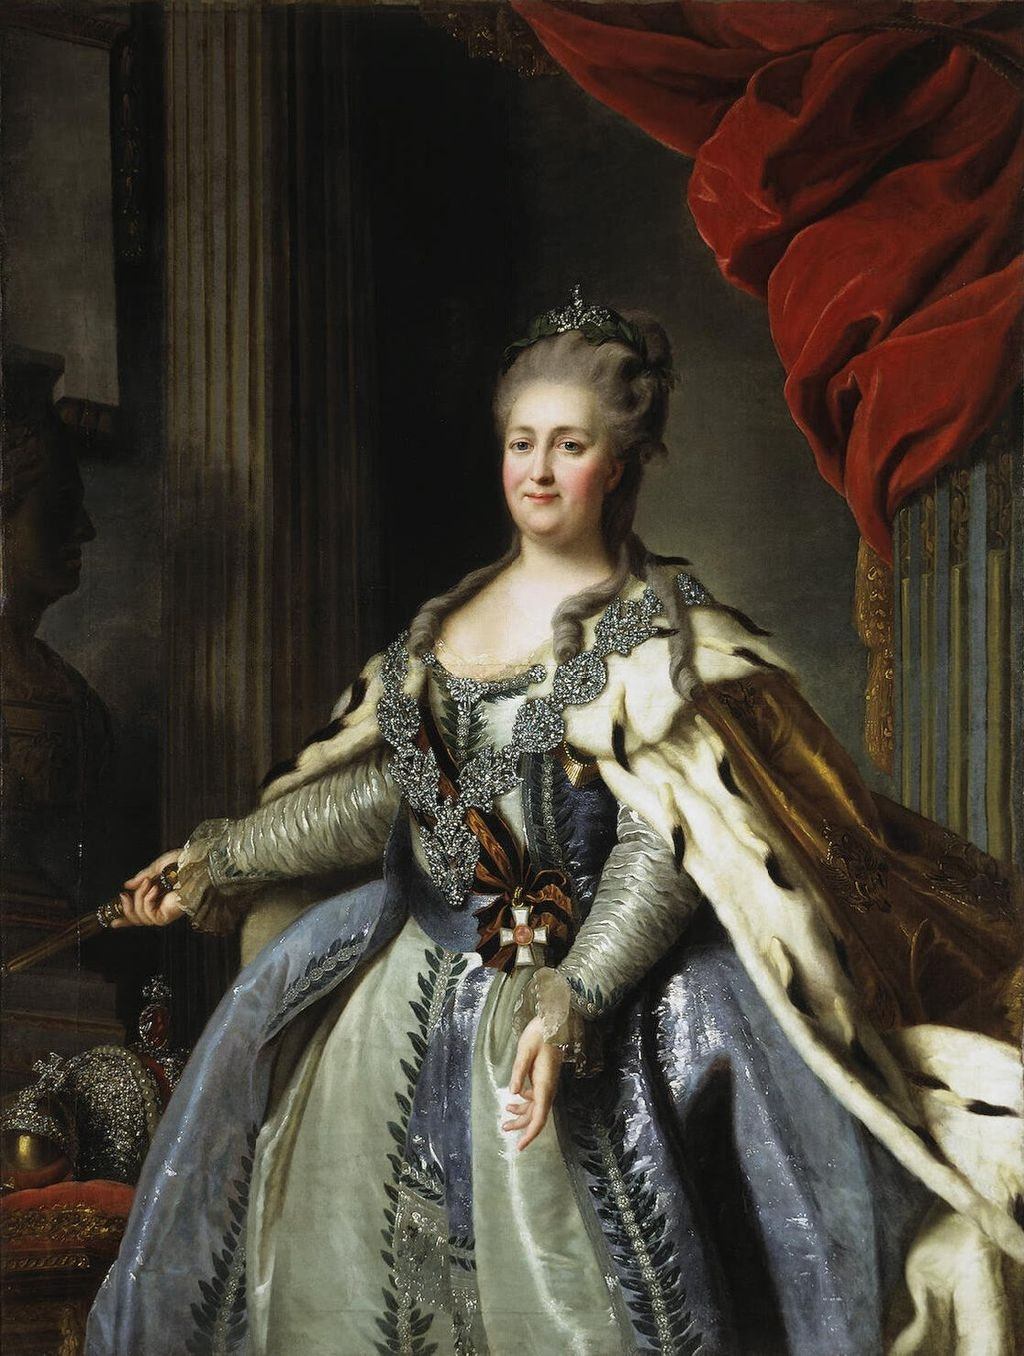 empress catherine ii the great essay Genealogy profile for catherine the great, empress of all russia empress and autocrat of all the russias catherine ii the great romanov (askanier) (1729 - 1796) - genealogy genealogy for empress and autocrat of all the russias catherine ii the great romanov (askanier) (1729 - 1796) family tree on geni, with over 185 million profiles of .